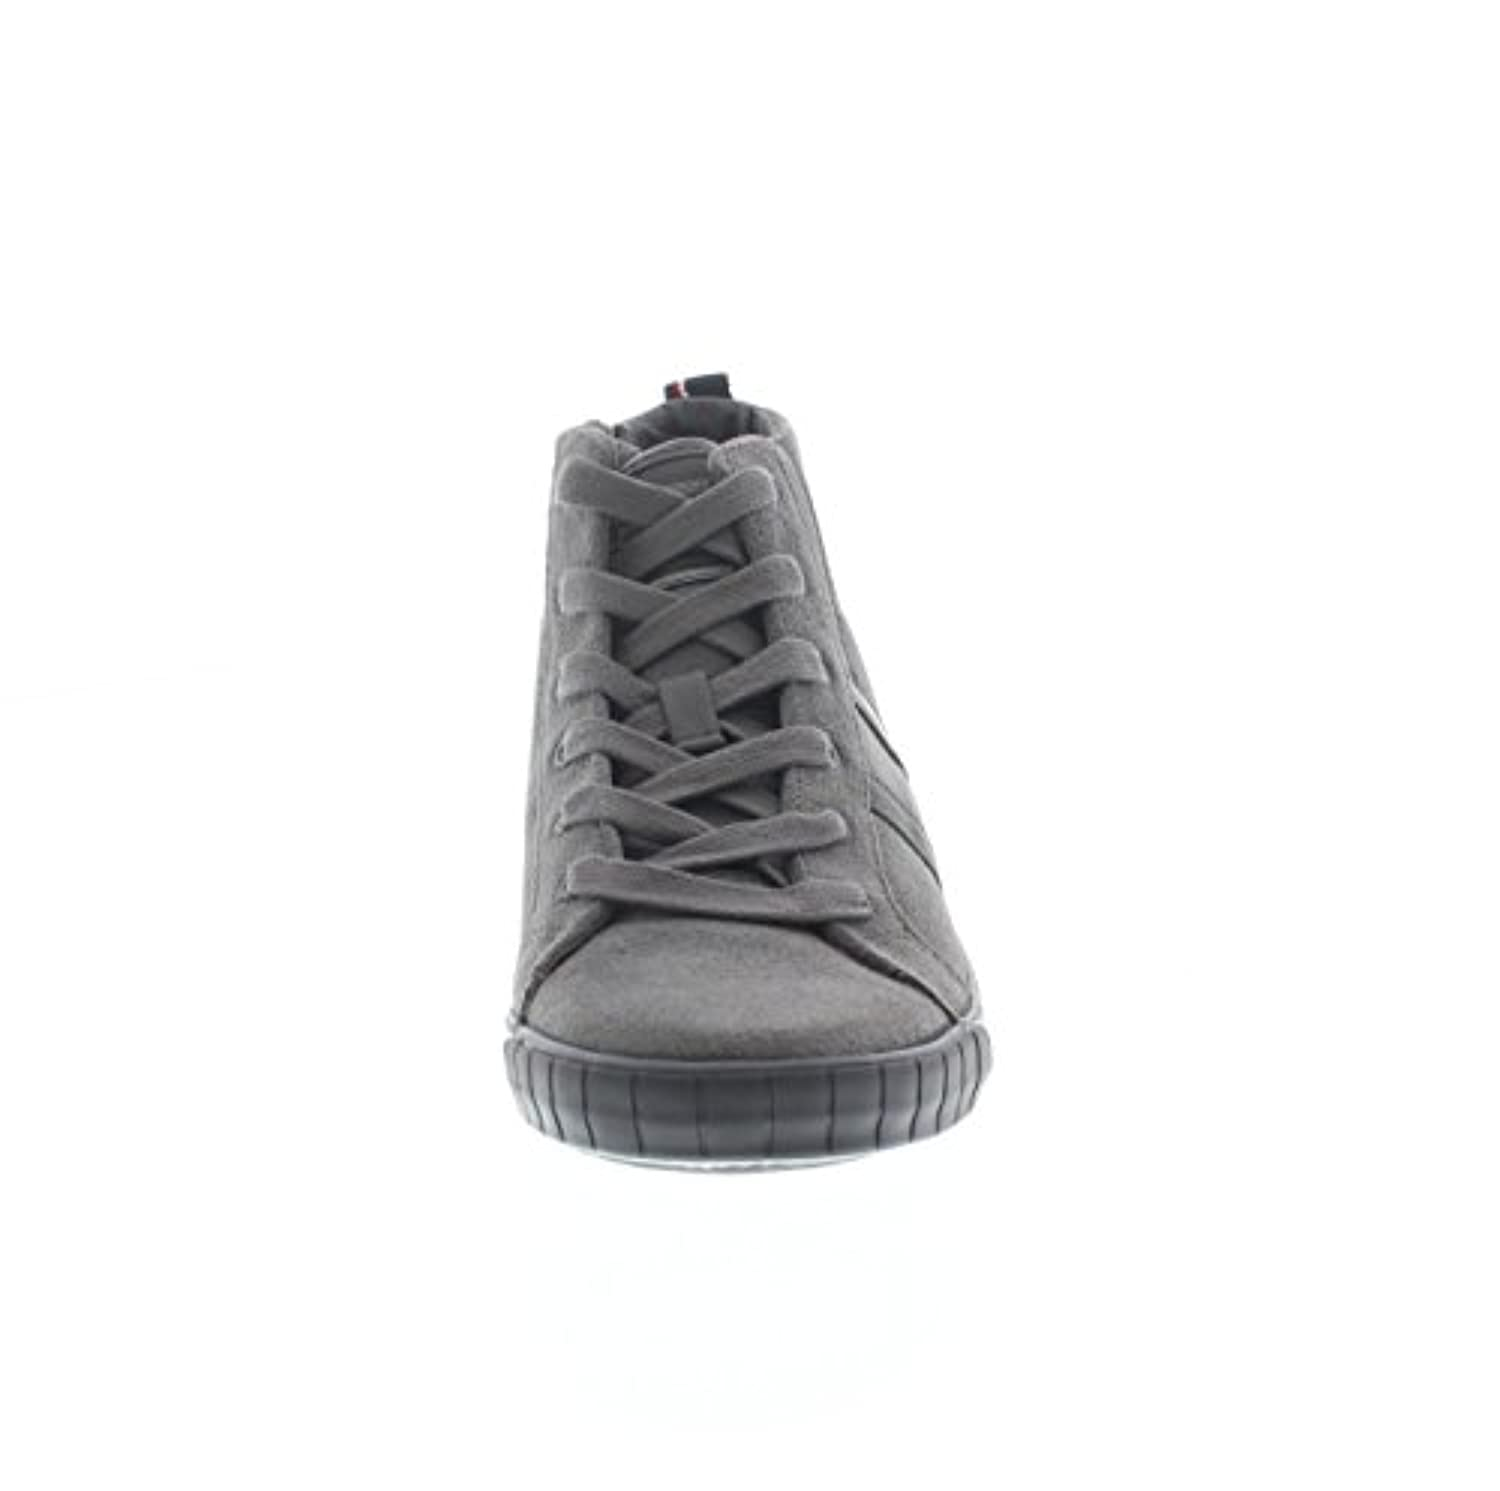 Tommy Hilfiger Boys' S3285ammie 4c Trainers grey Size: 1/1.5